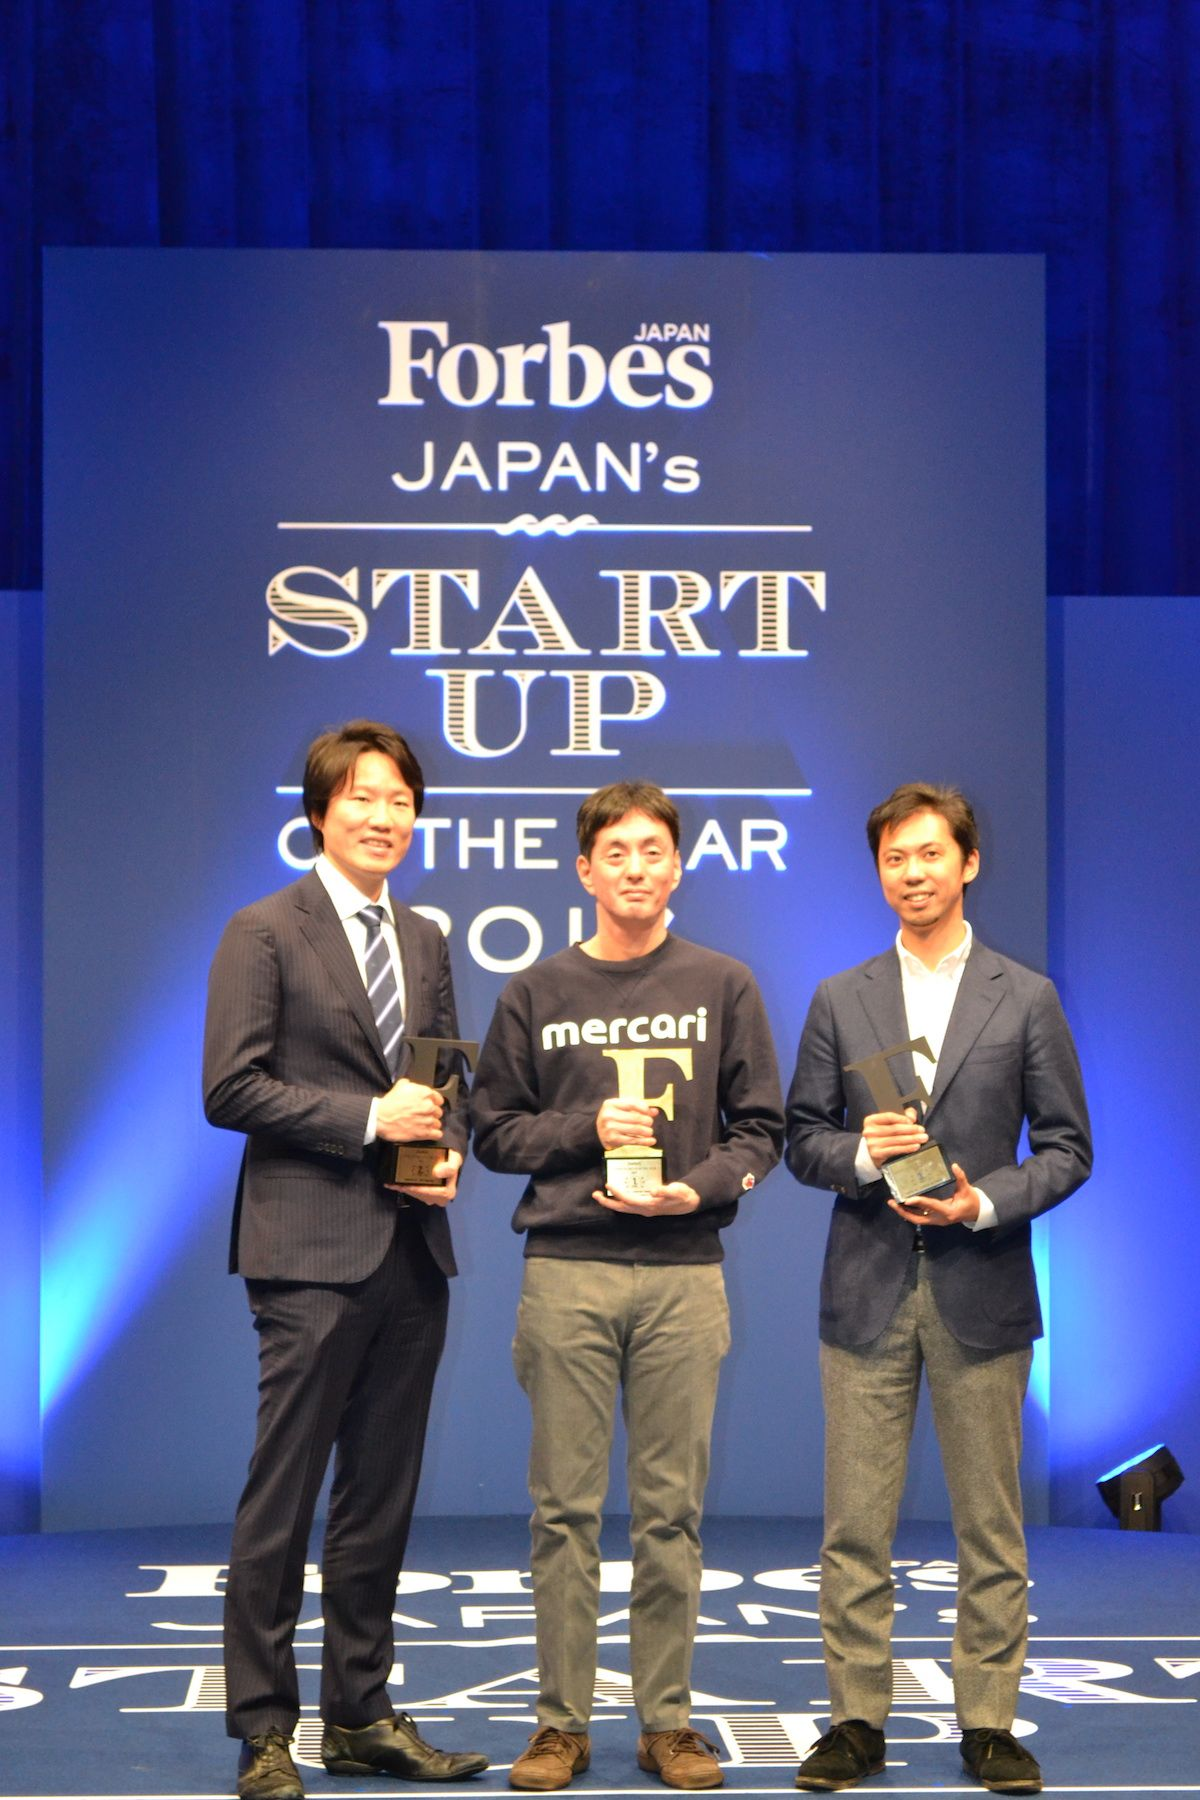 Forbes Japan expects Japanese startups to revitalize the economy